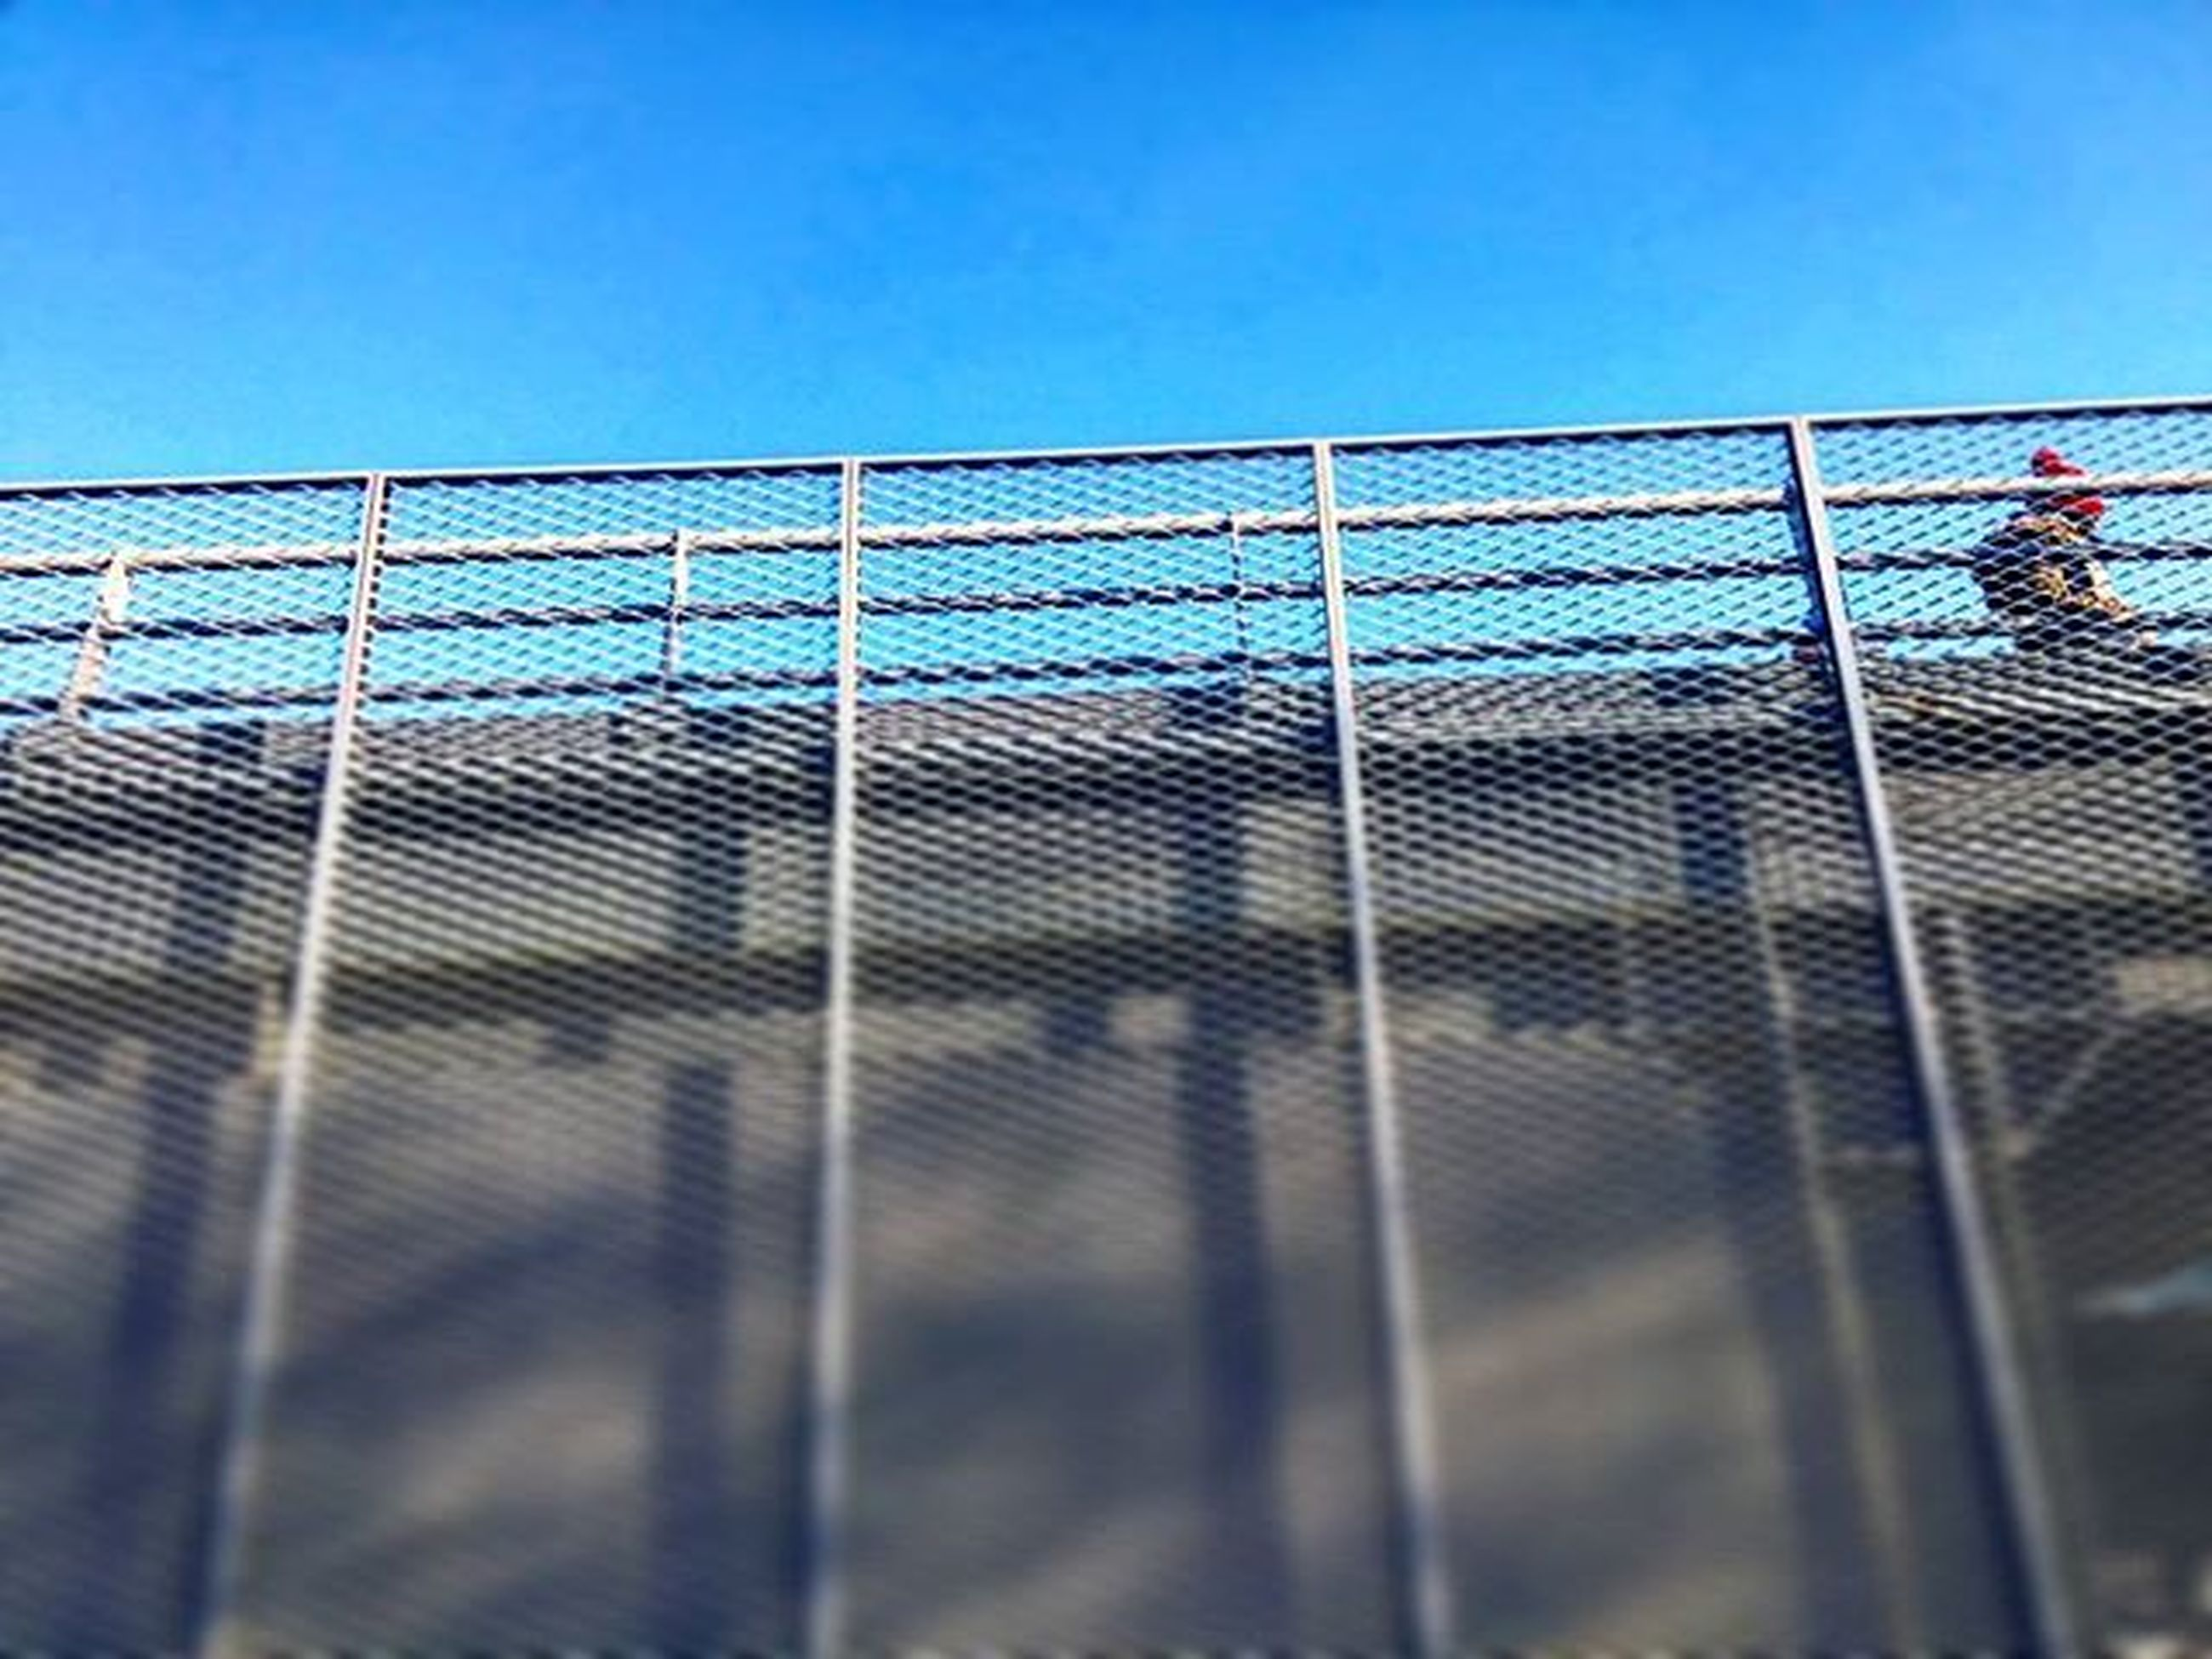 clear sky, blue, railing, copy space, built structure, architecture, men, sunlight, lifestyles, walking, shadow, building exterior, leisure activity, bridge - man made structure, outdoors, city, person, transportation, day